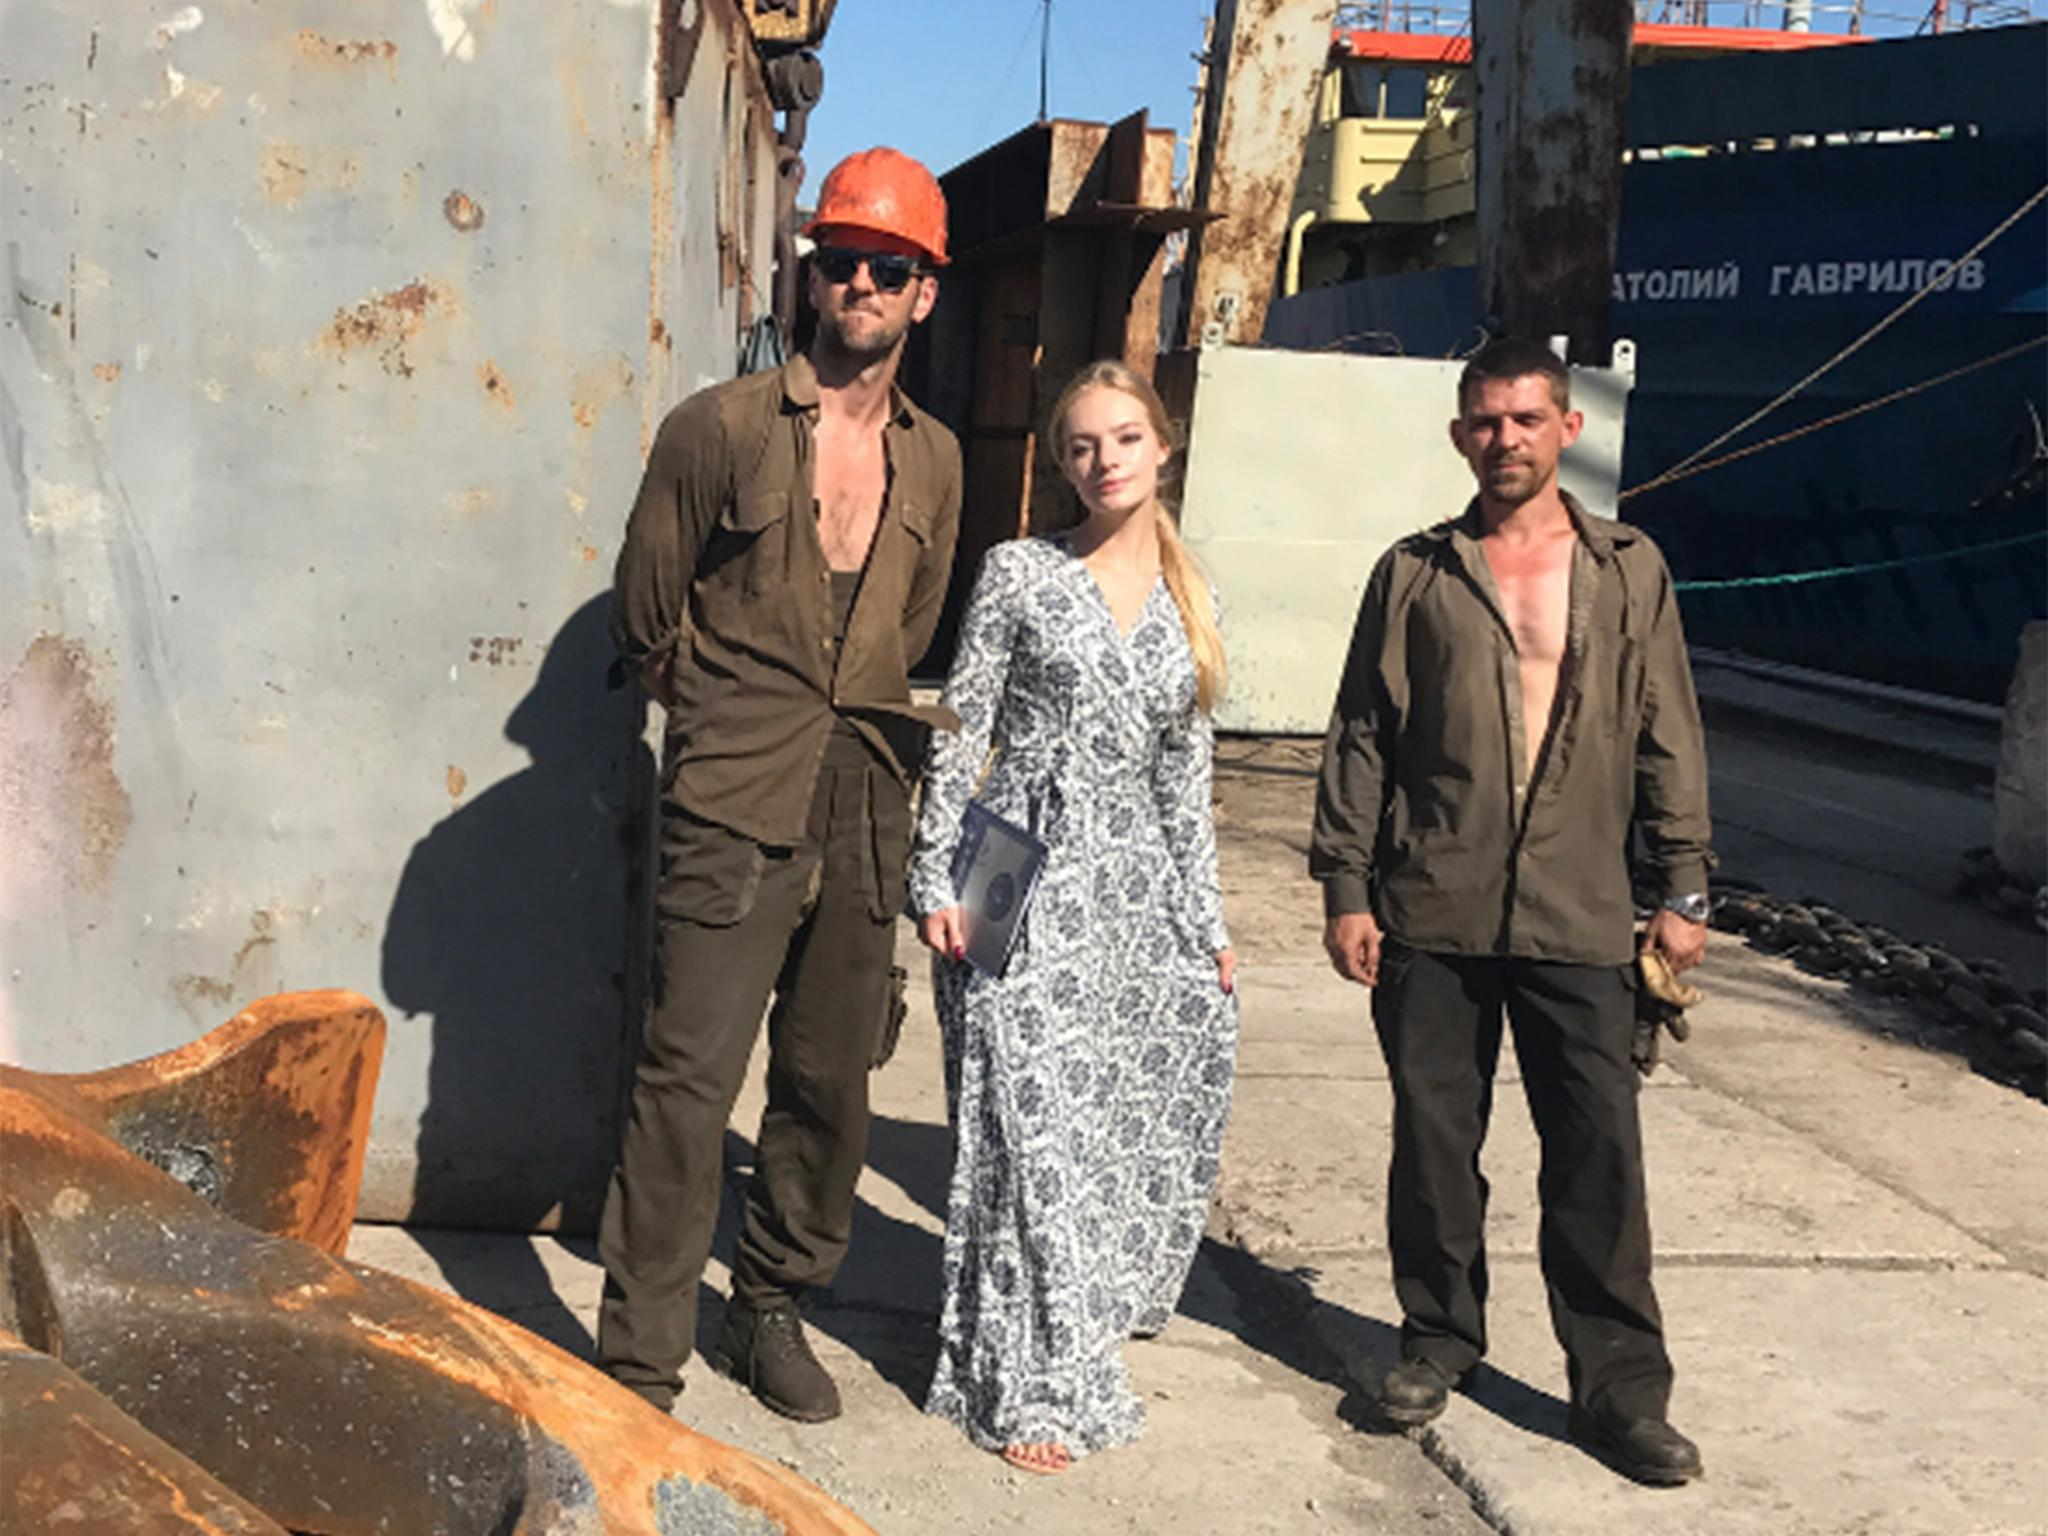 Daughter Of Vladimir Putin Ally Mocked After Visiting Crimean Shipyard To Promote Patriotic Business The Independent The Independent